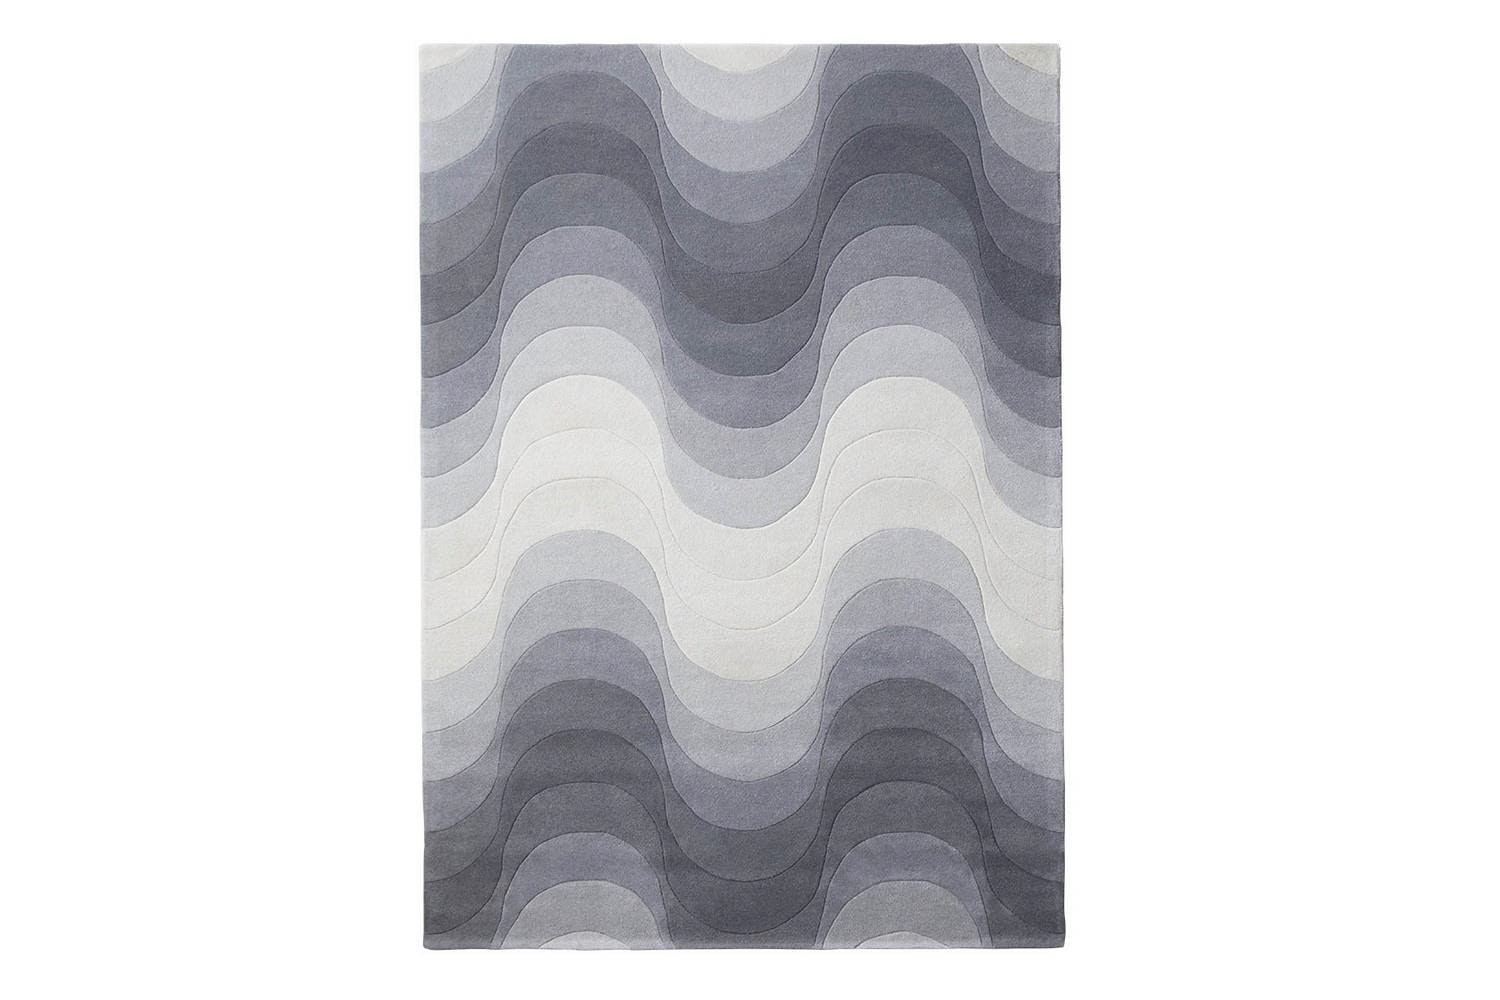 Wave Rug by Verner Panton for Verpan